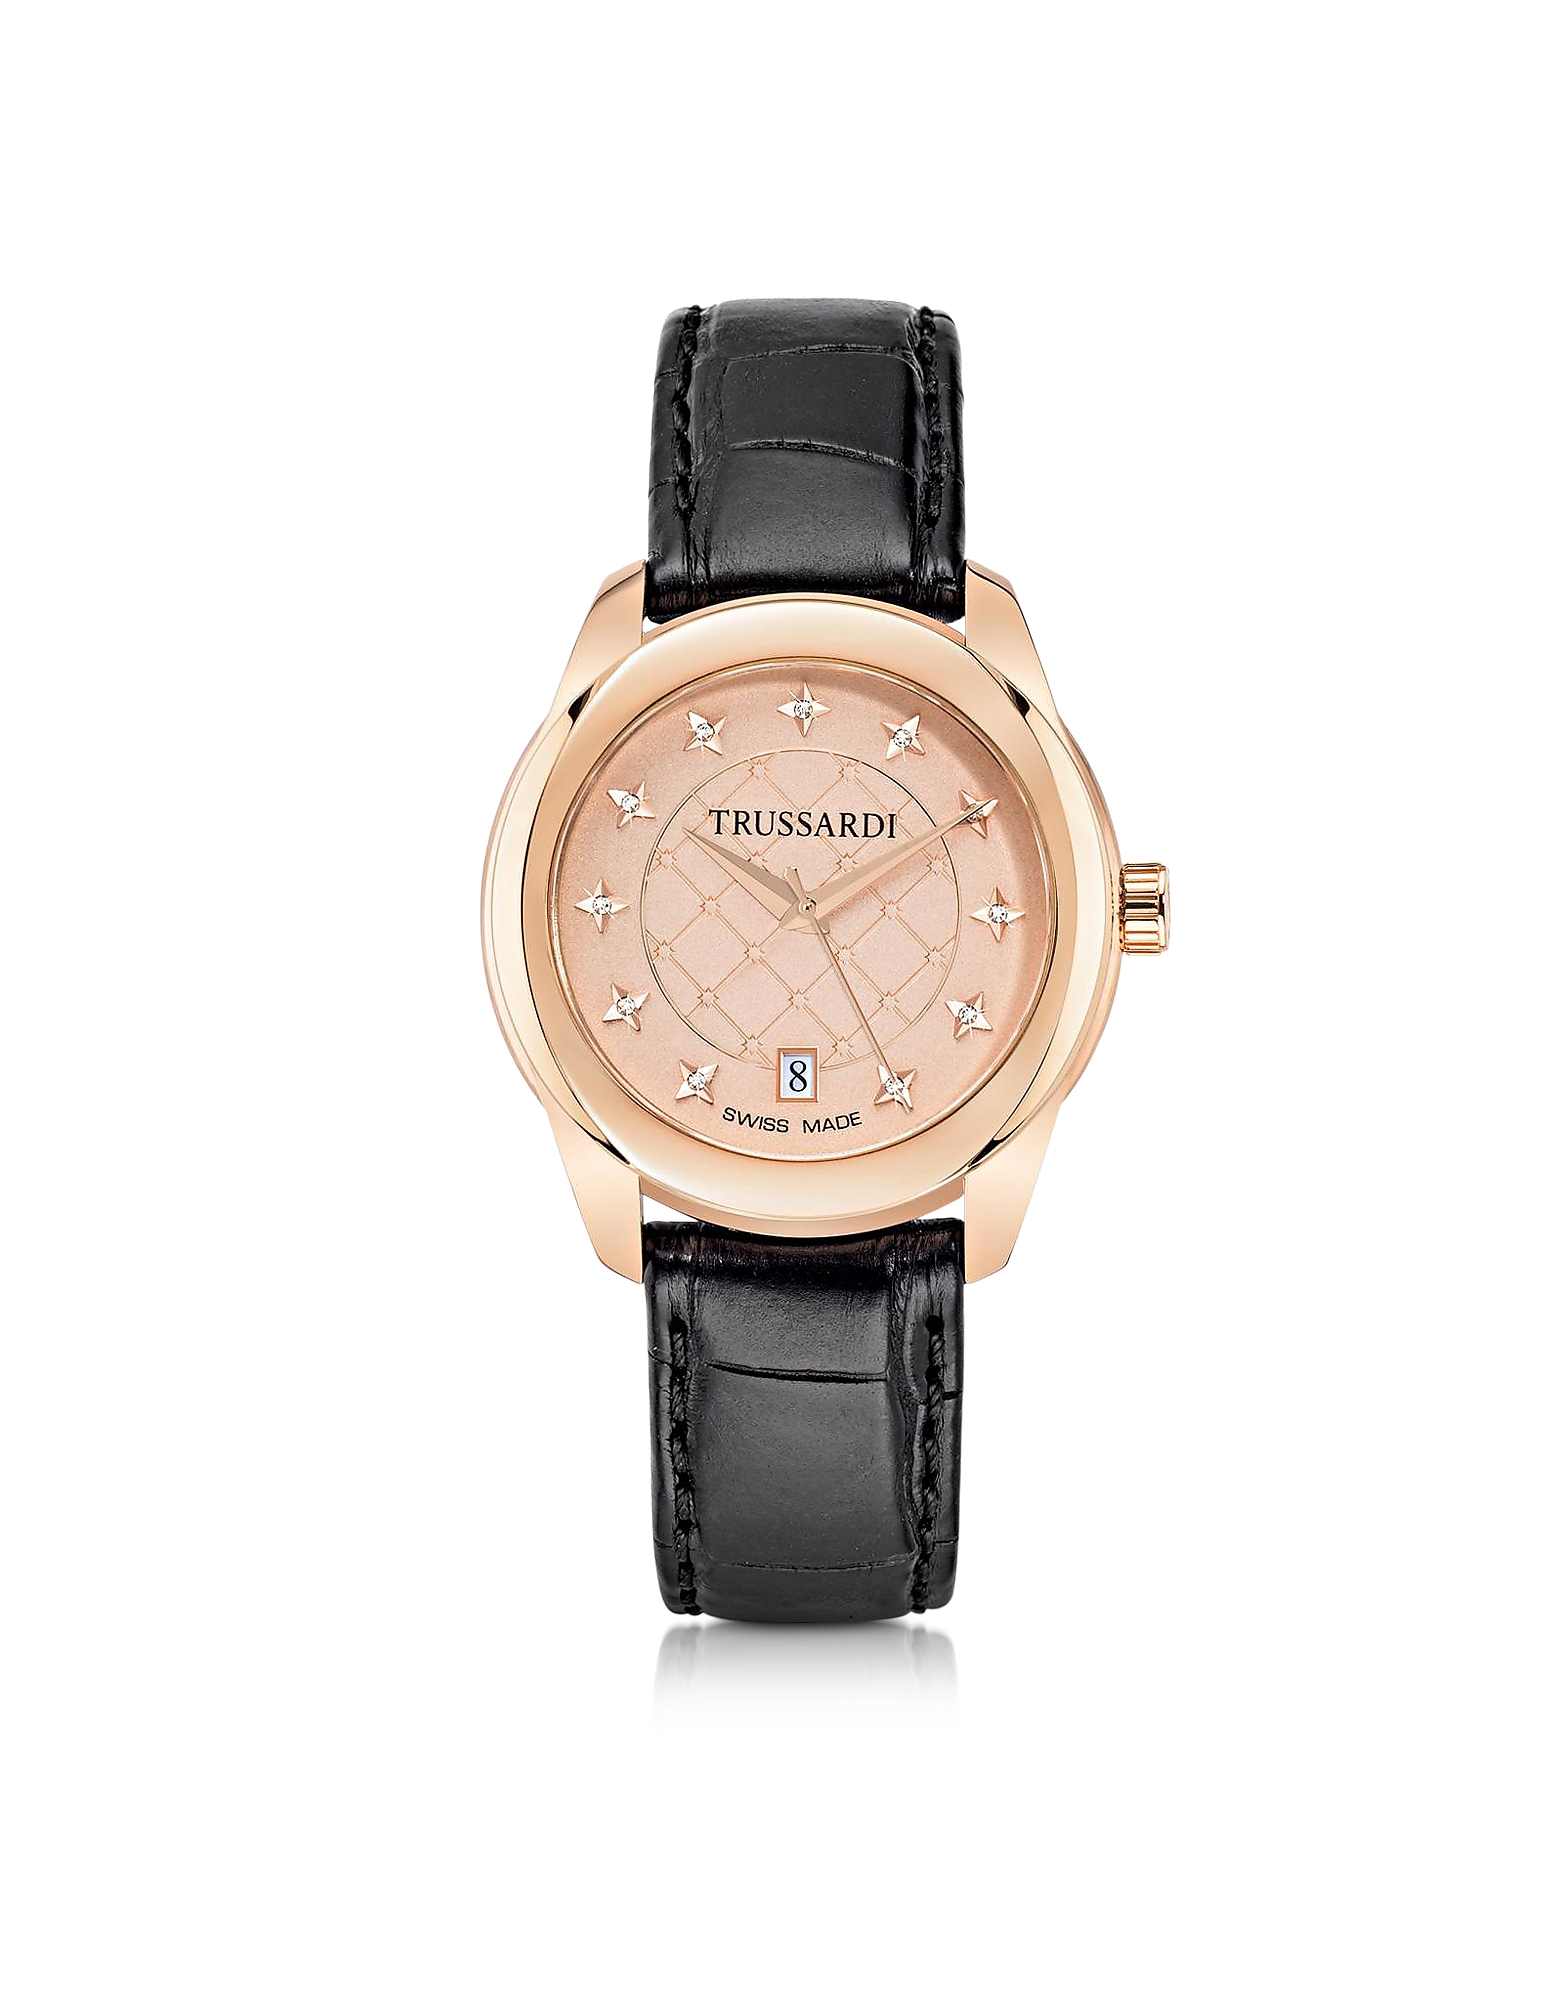 Trussardi Women's Watches, T01 Lady Rose Gold Stainless Steel and Black Leather Women's Watch